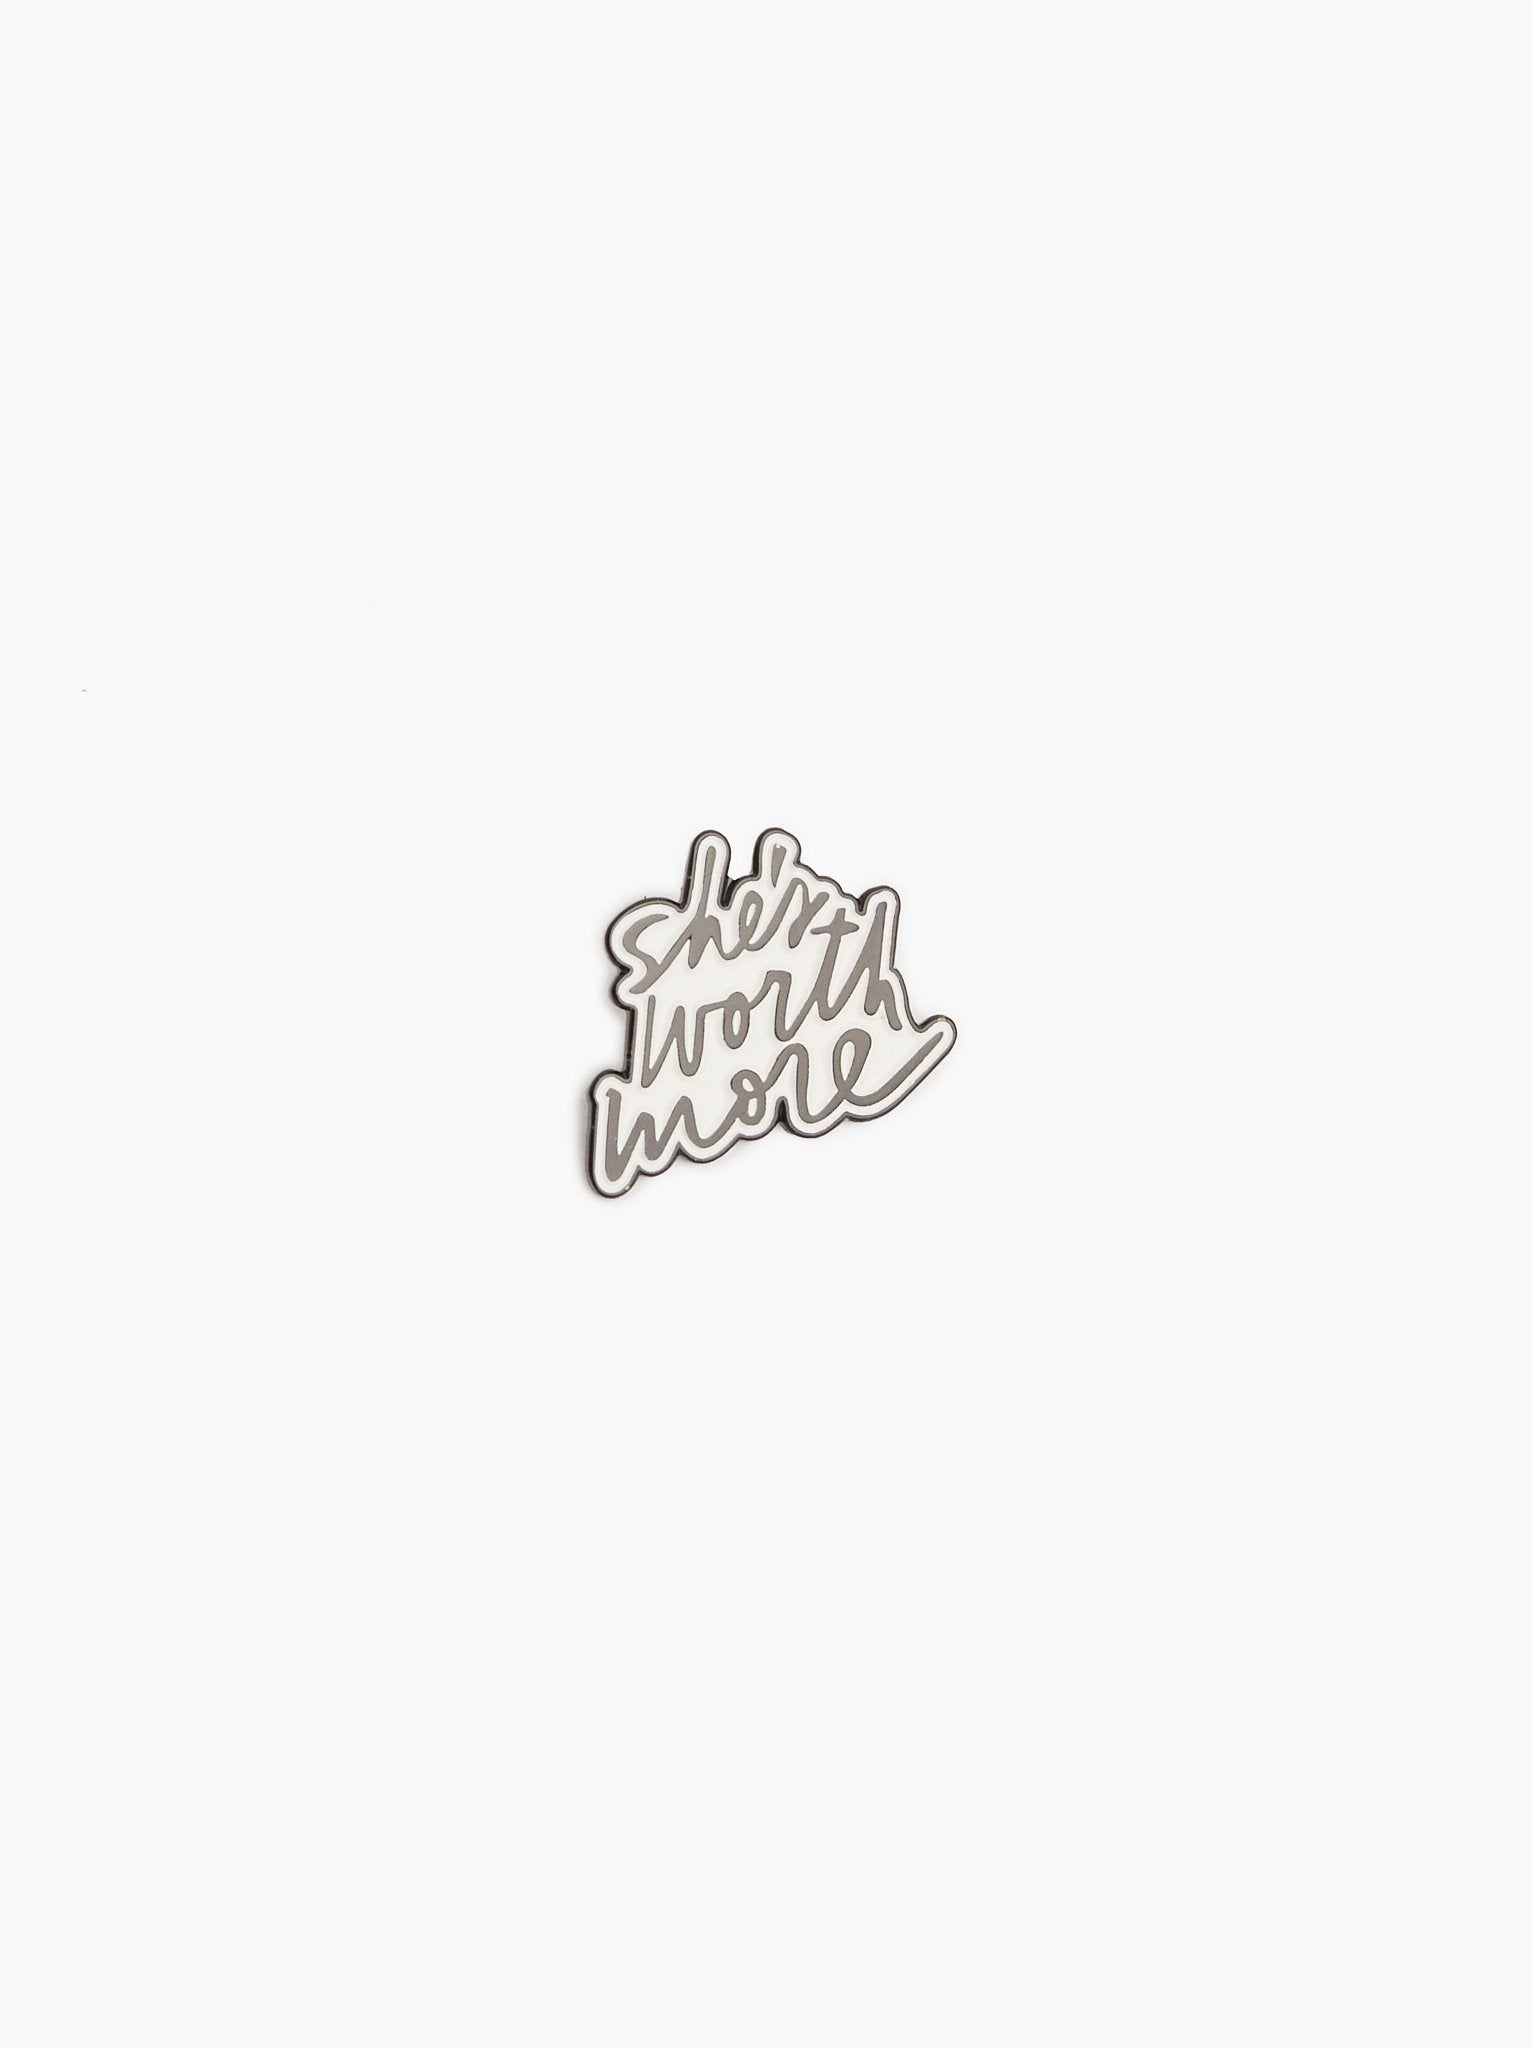 She's Worth More Enamel Pin